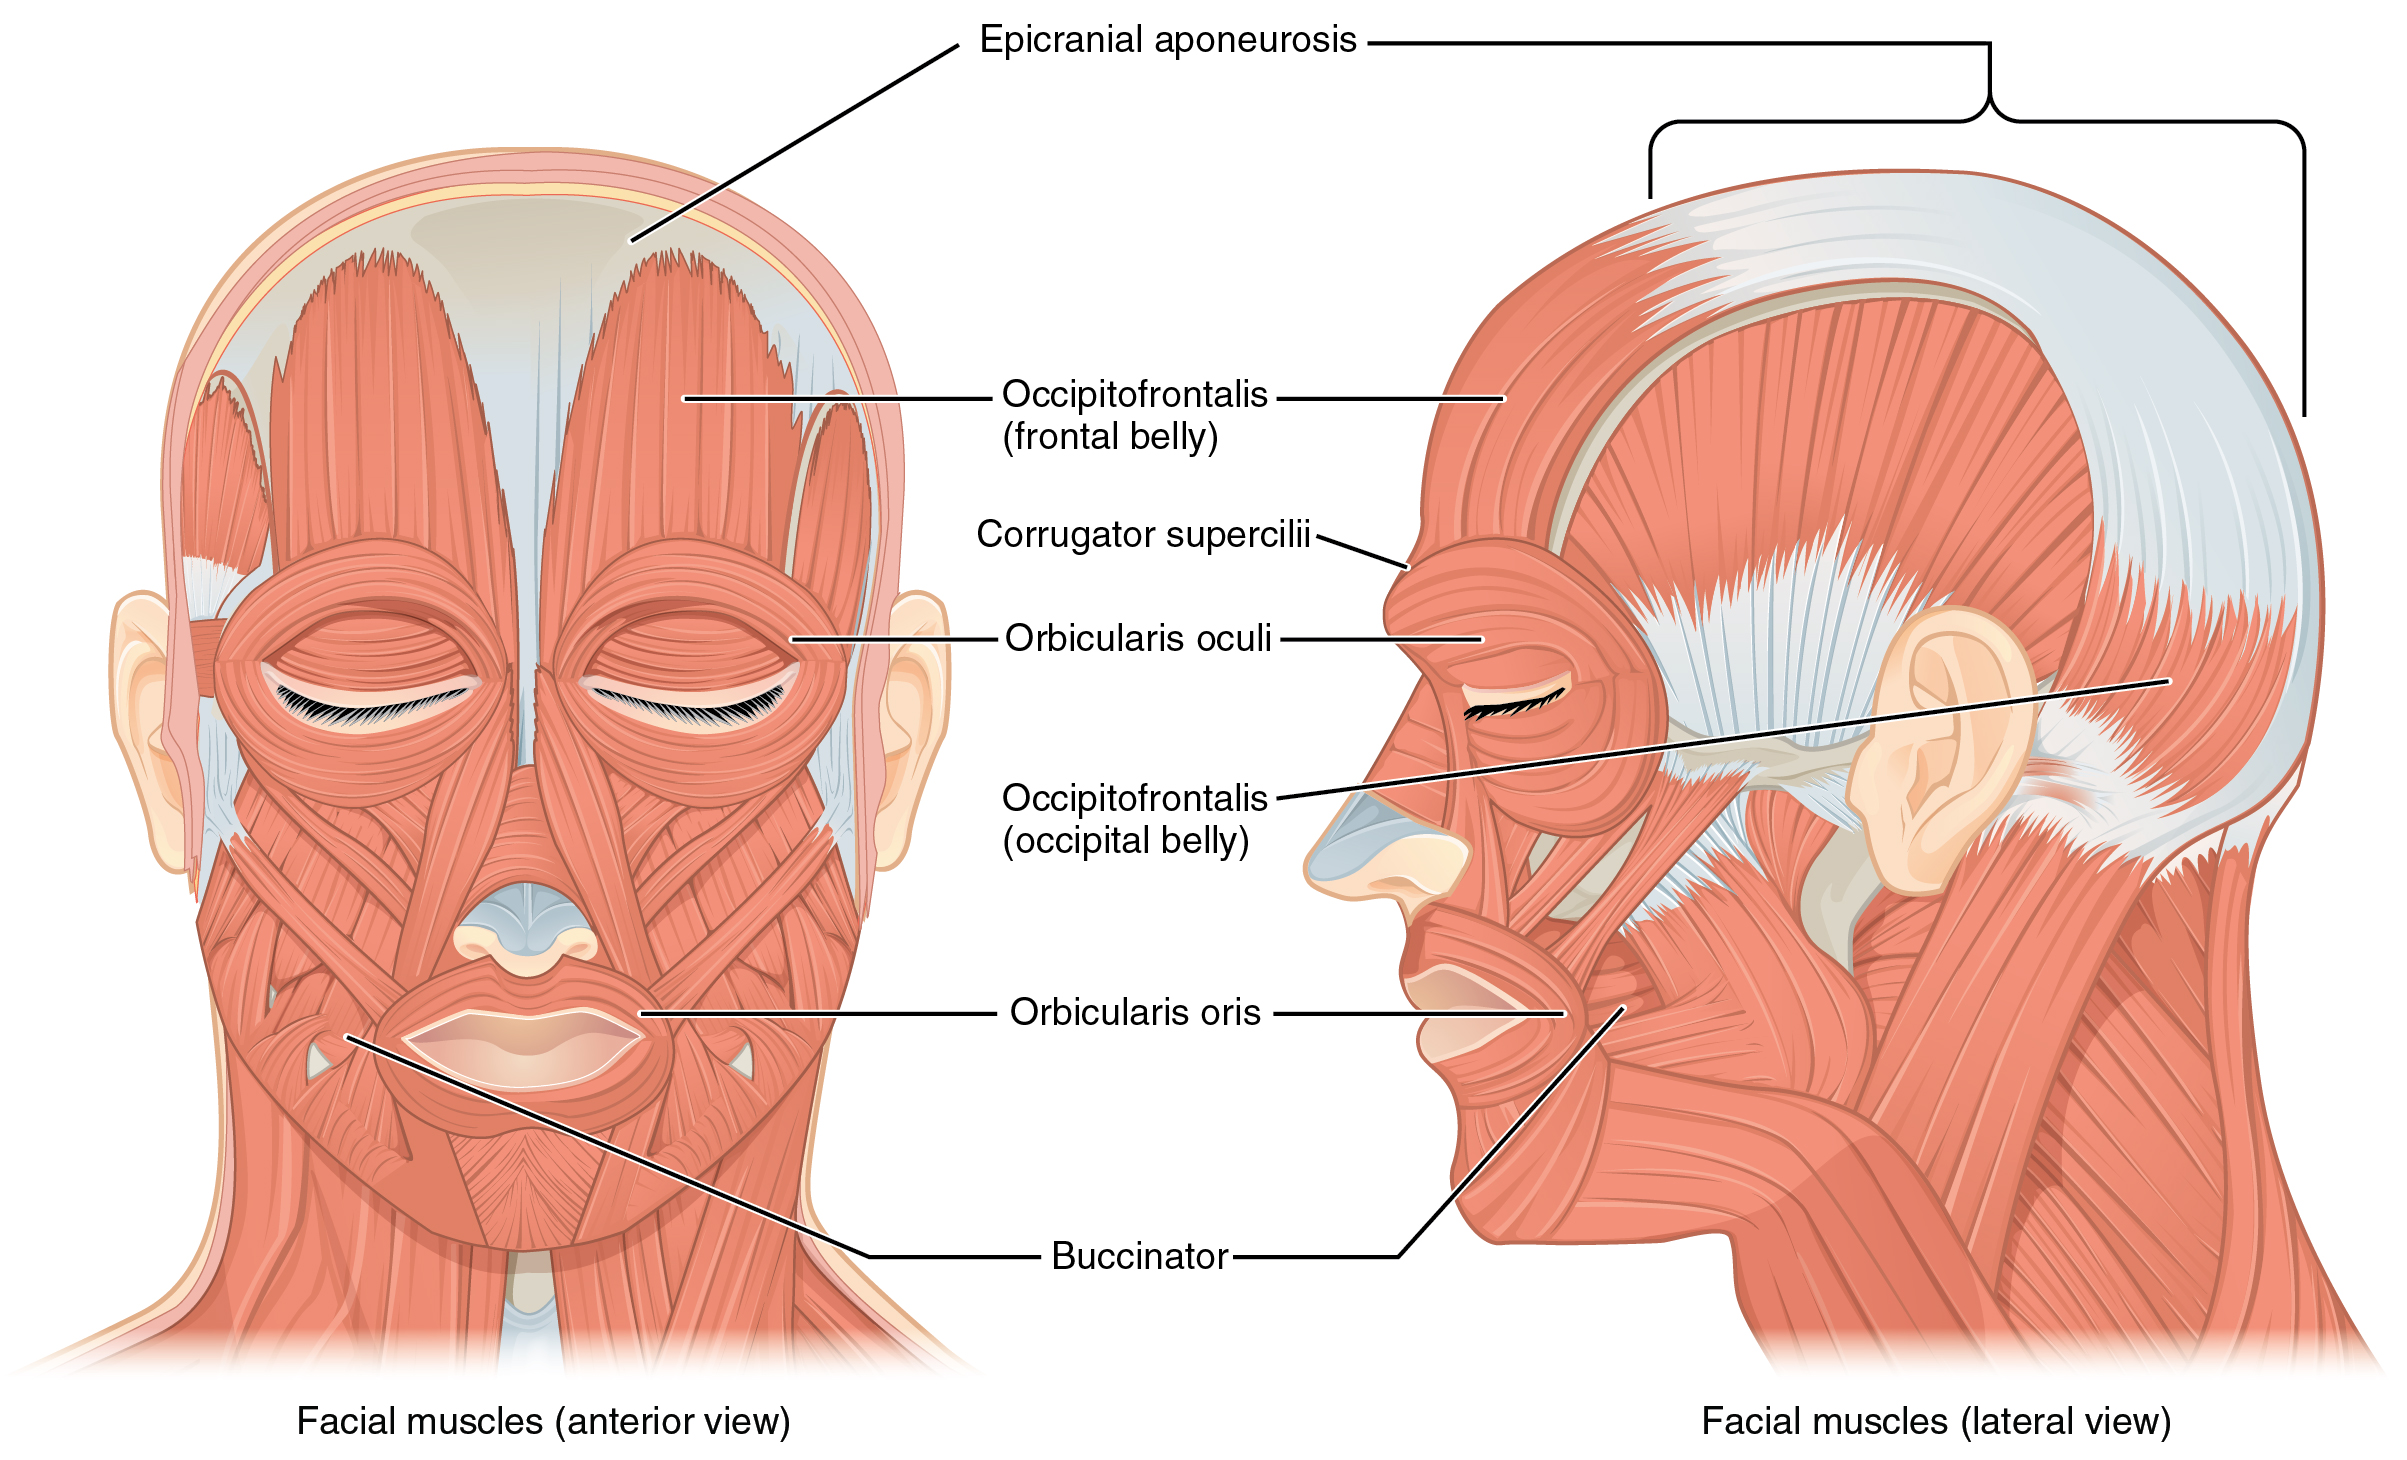 The muscles of the head and neck human anatomy and physiology lab located at httpscnxresources9b369a7466ec2ef44a97decc8de15593c7189e131106frontandsideviewsofthemusclesoffacialexpressionsg ccuart Gallery